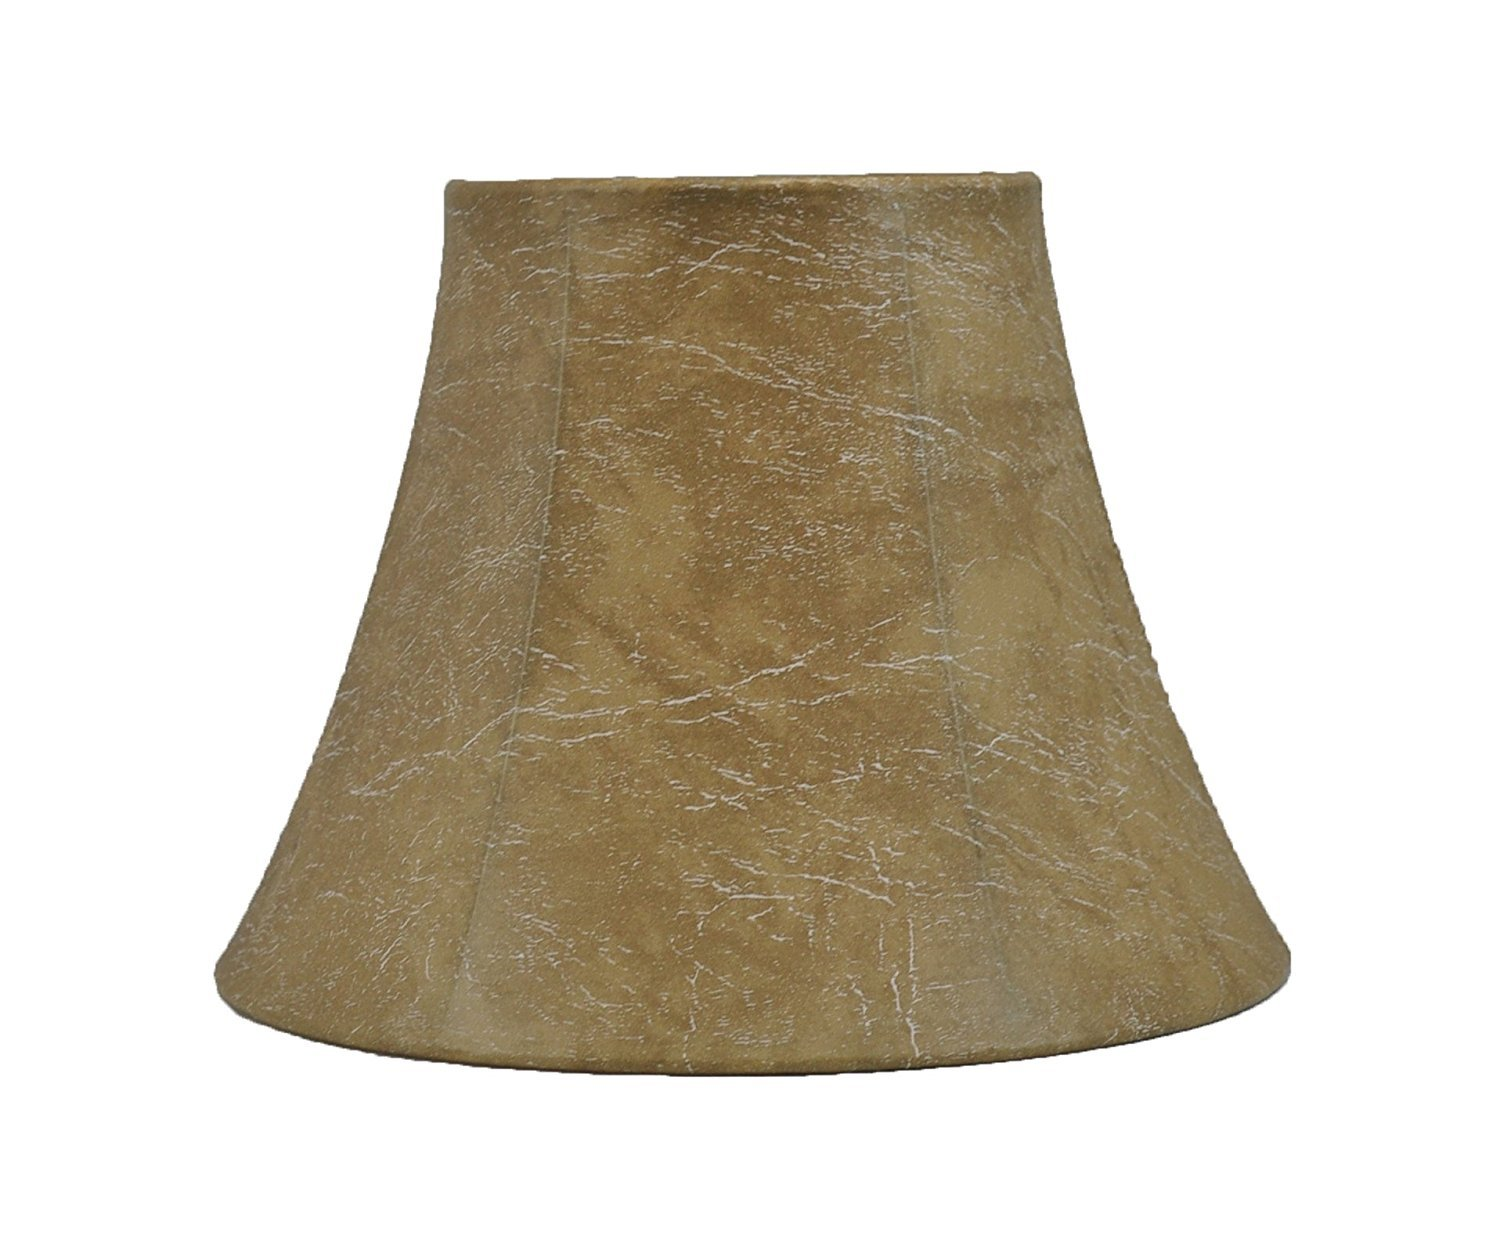 Urbanest Softback Bell Lamp Shade, Faux Leather, 5-inch by 9-inch by 7-inch, Spider-fitter